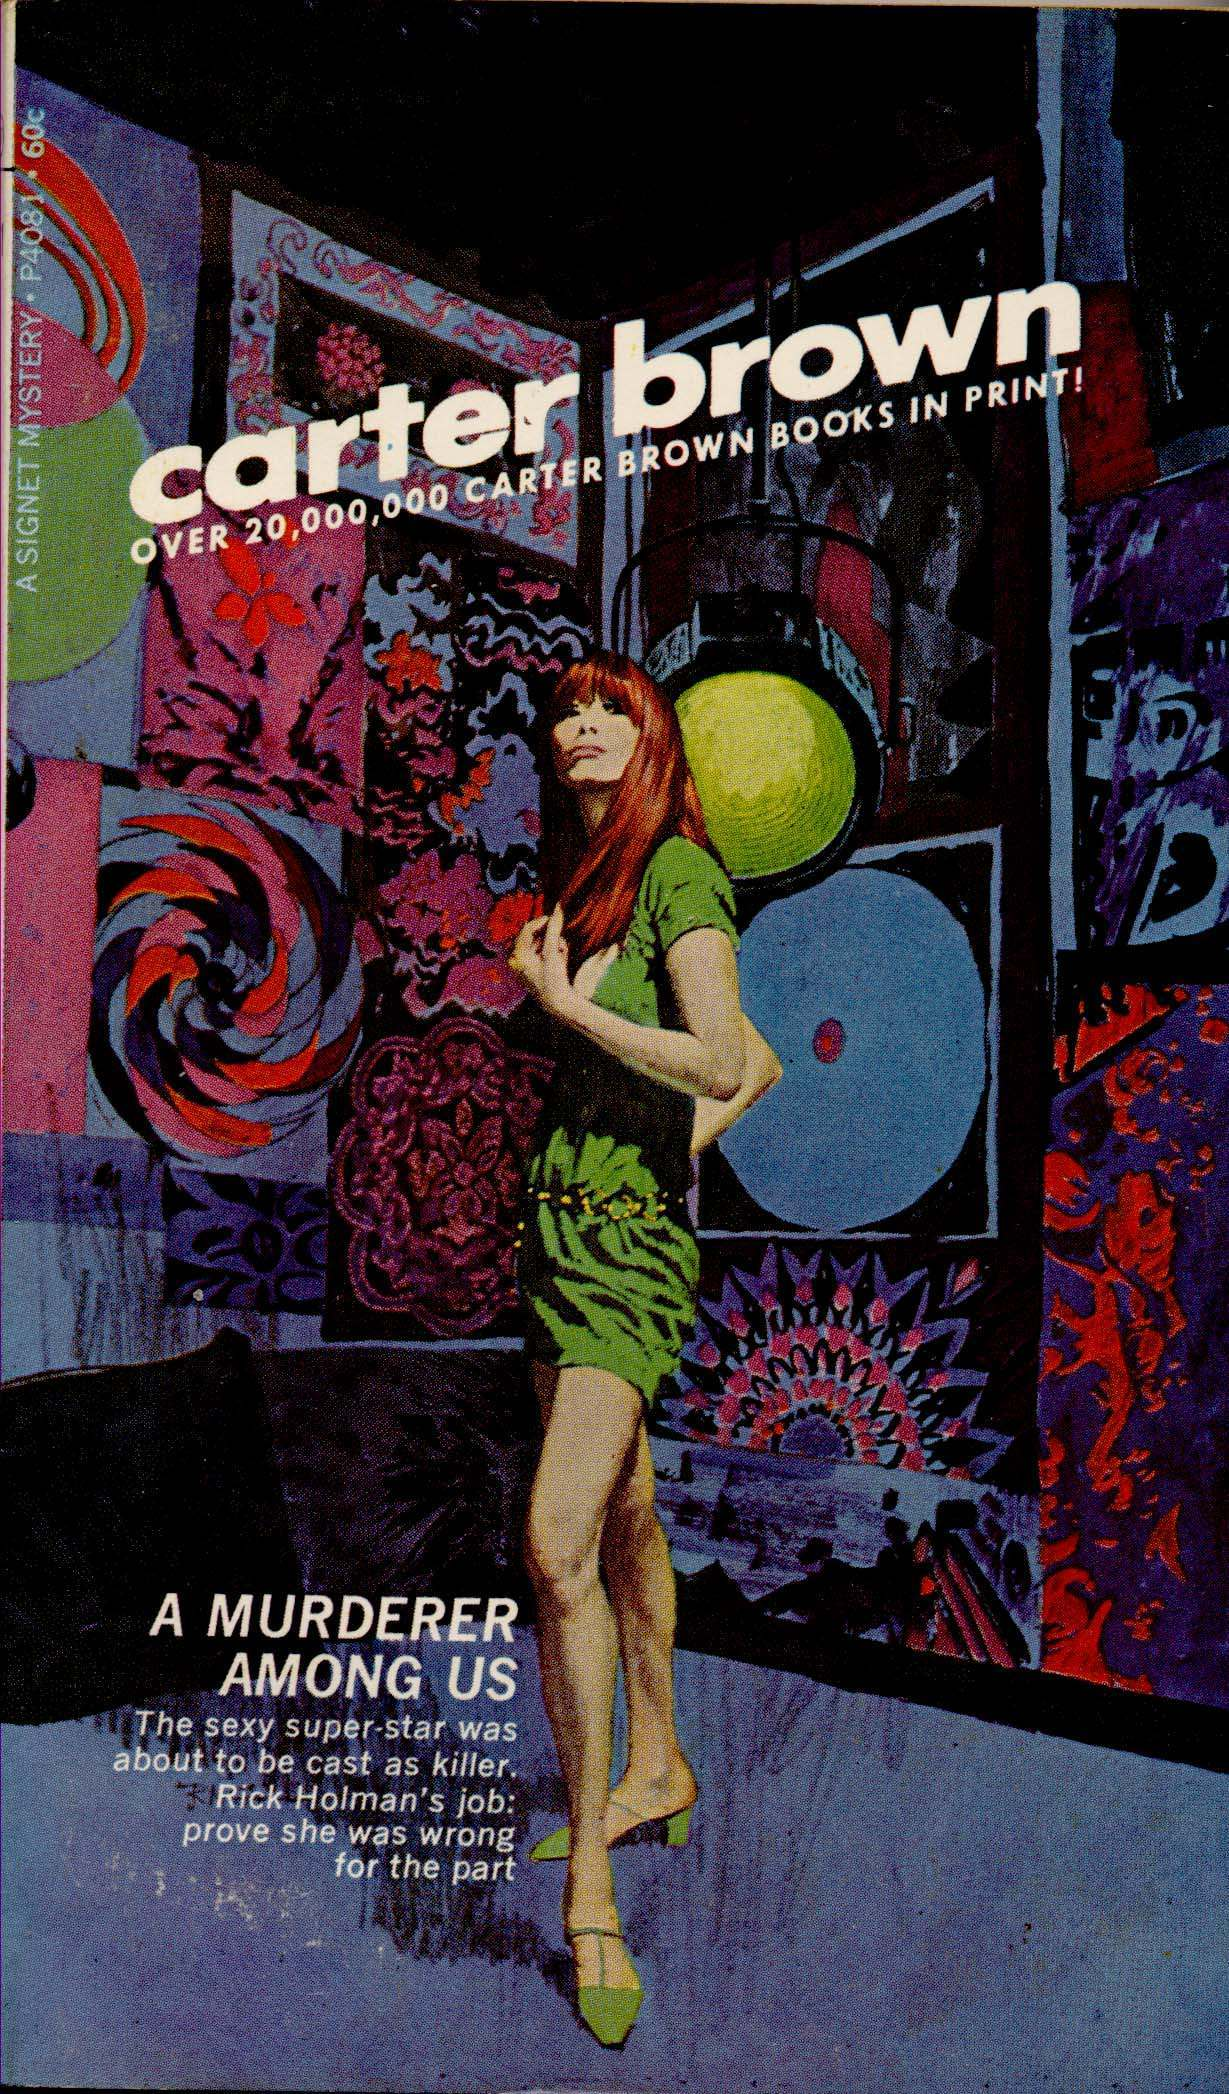 A Murderer Among Us by Carter Brown, 1969.